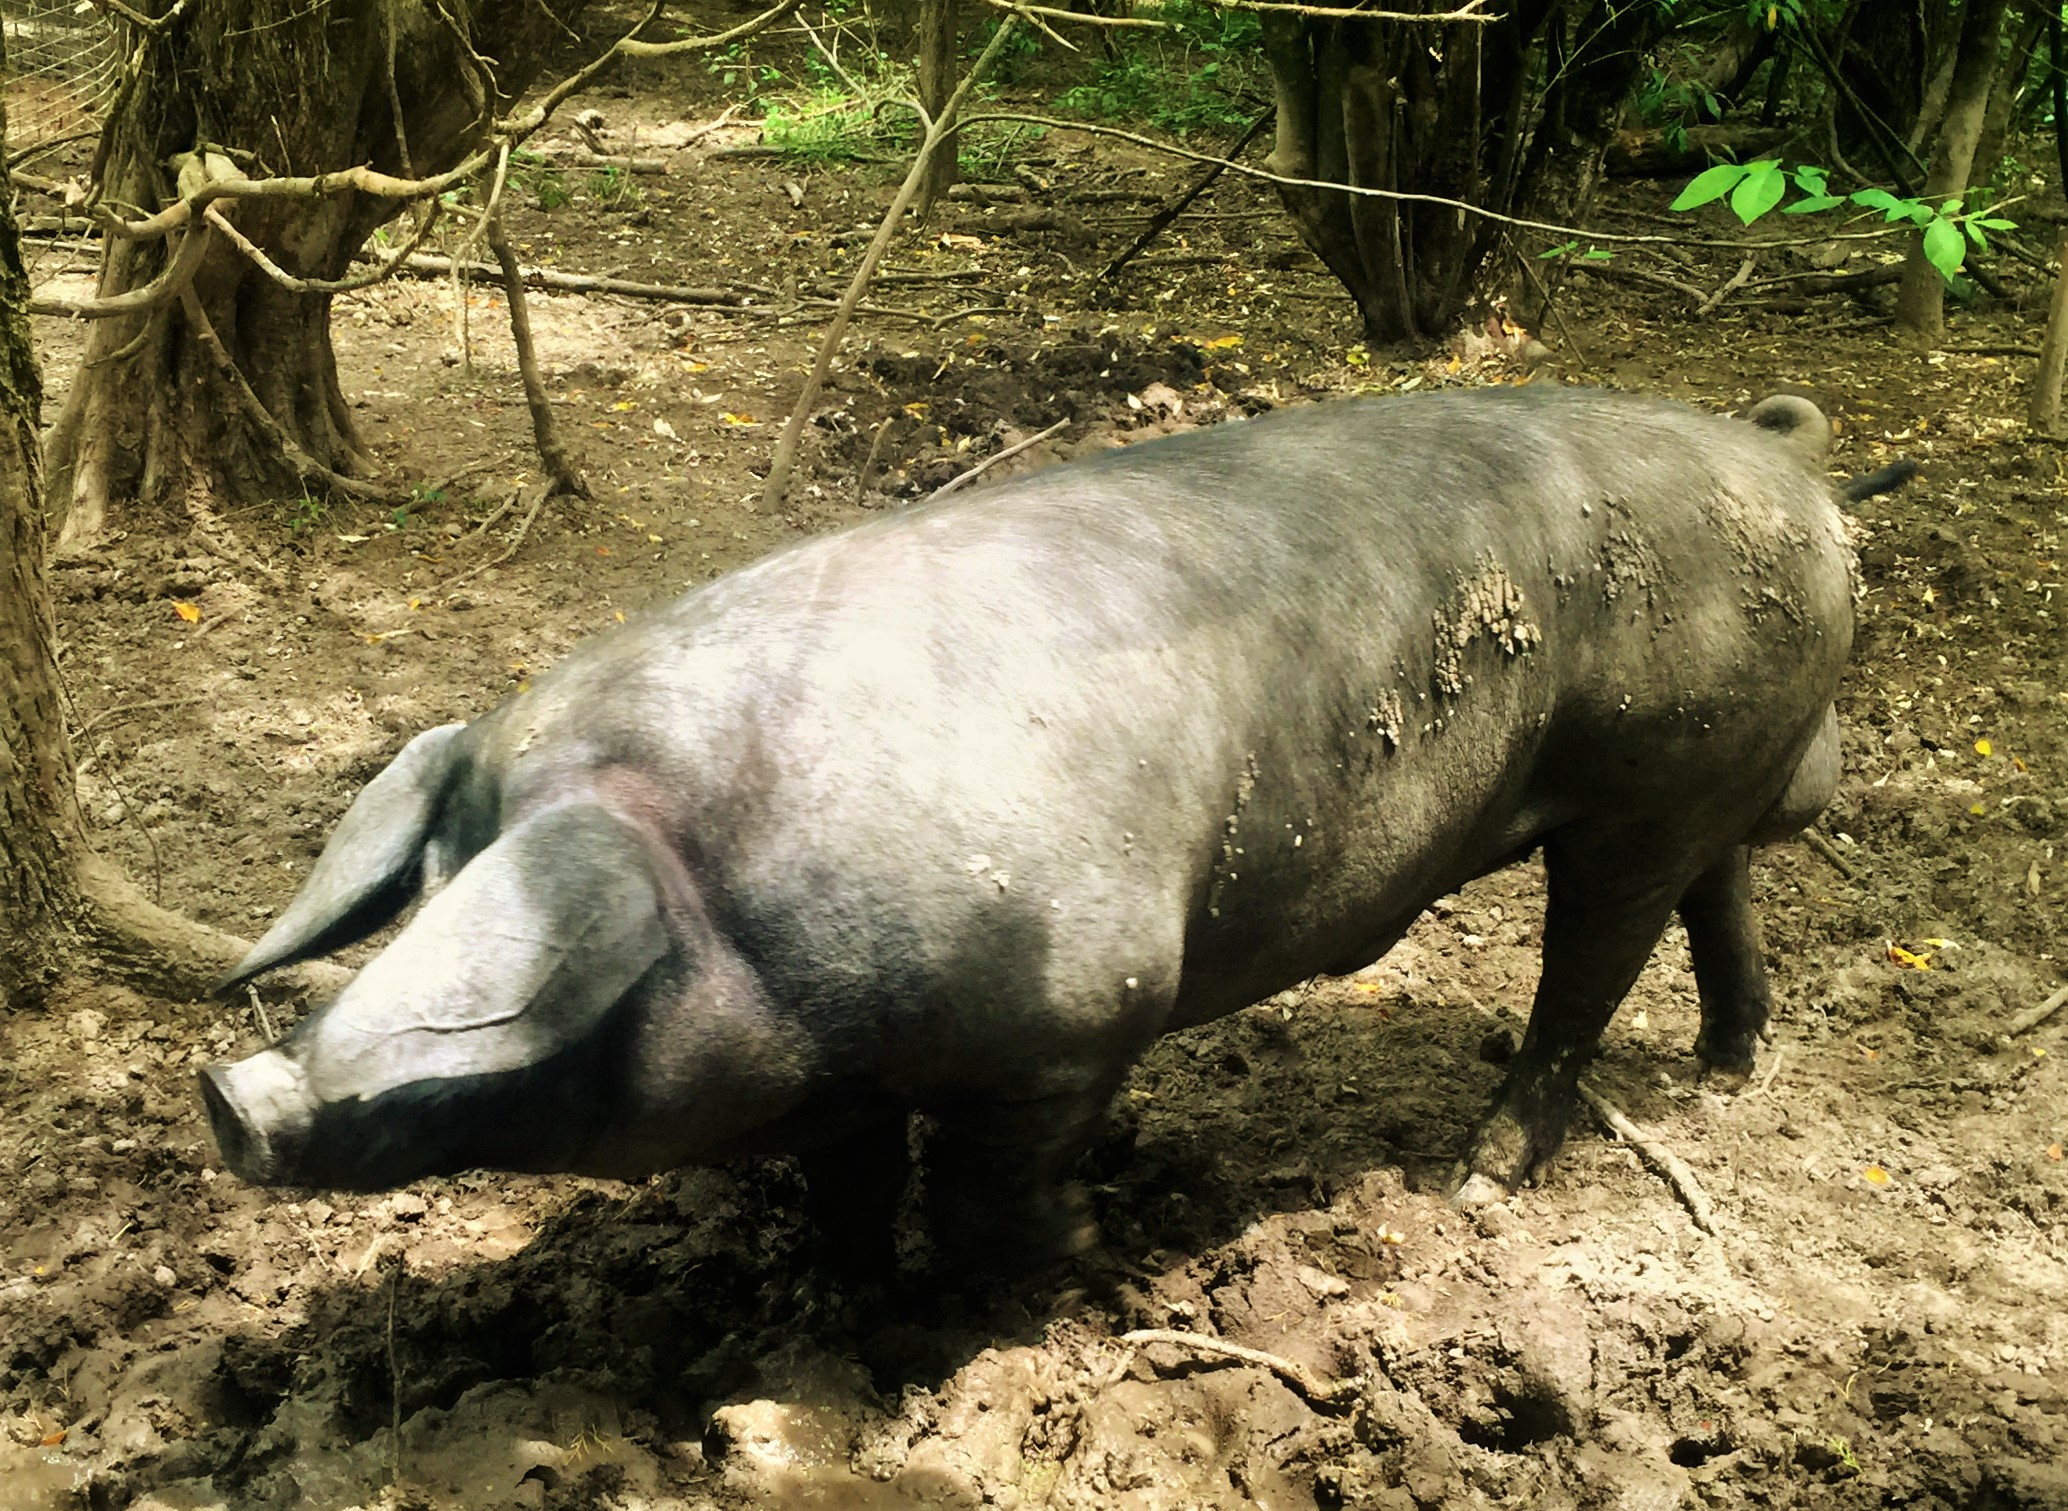 A large black boar at Meadowlark farms